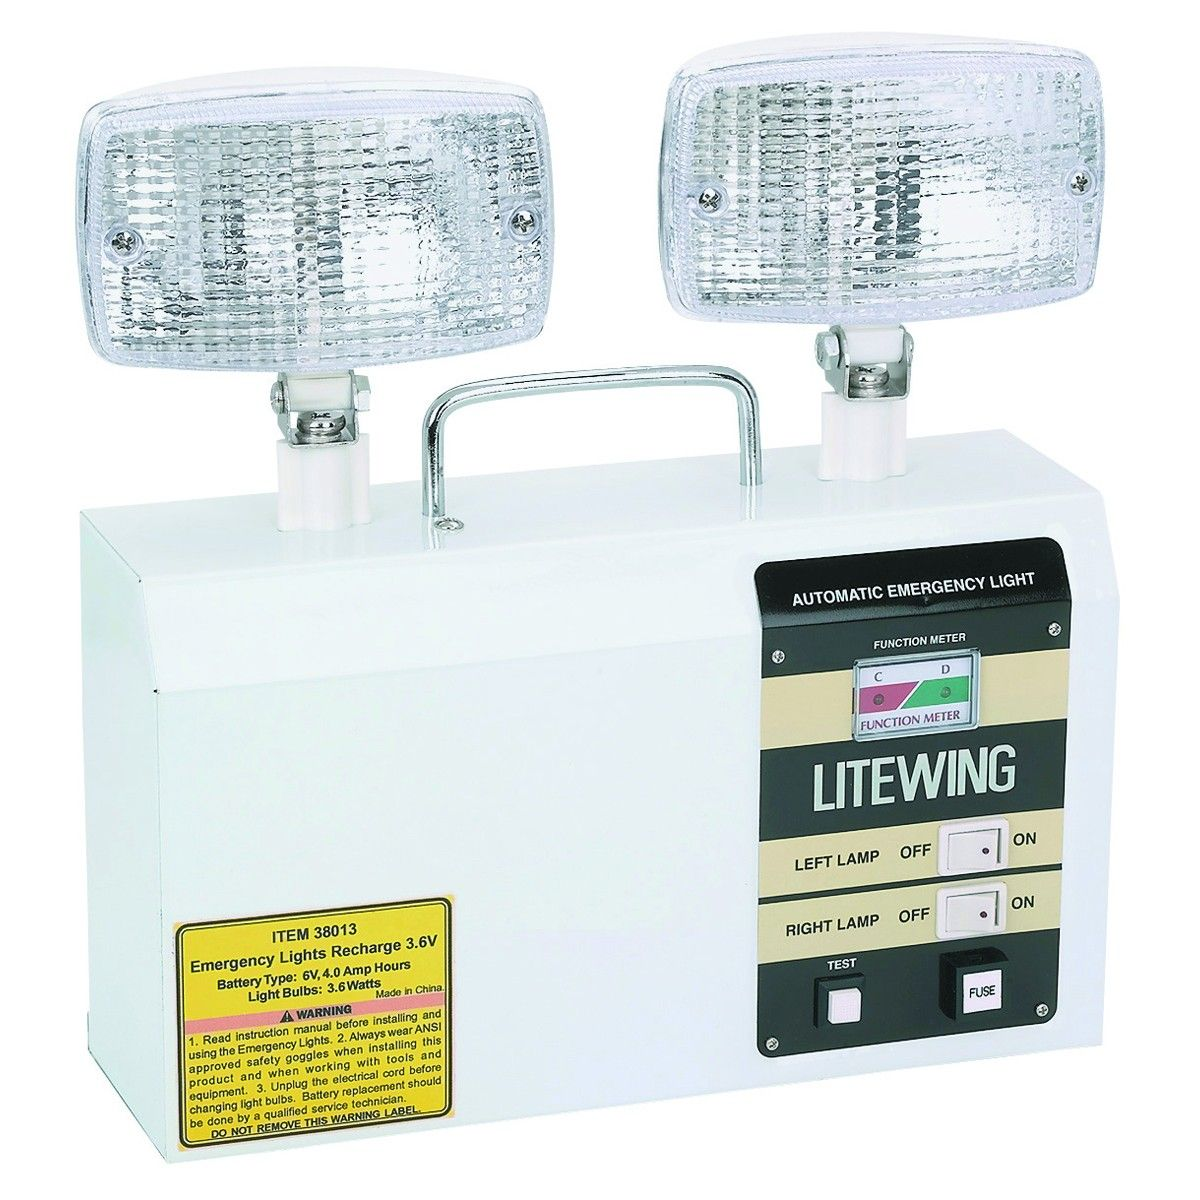 the hallway emergency light from harbor freight tools illuminates